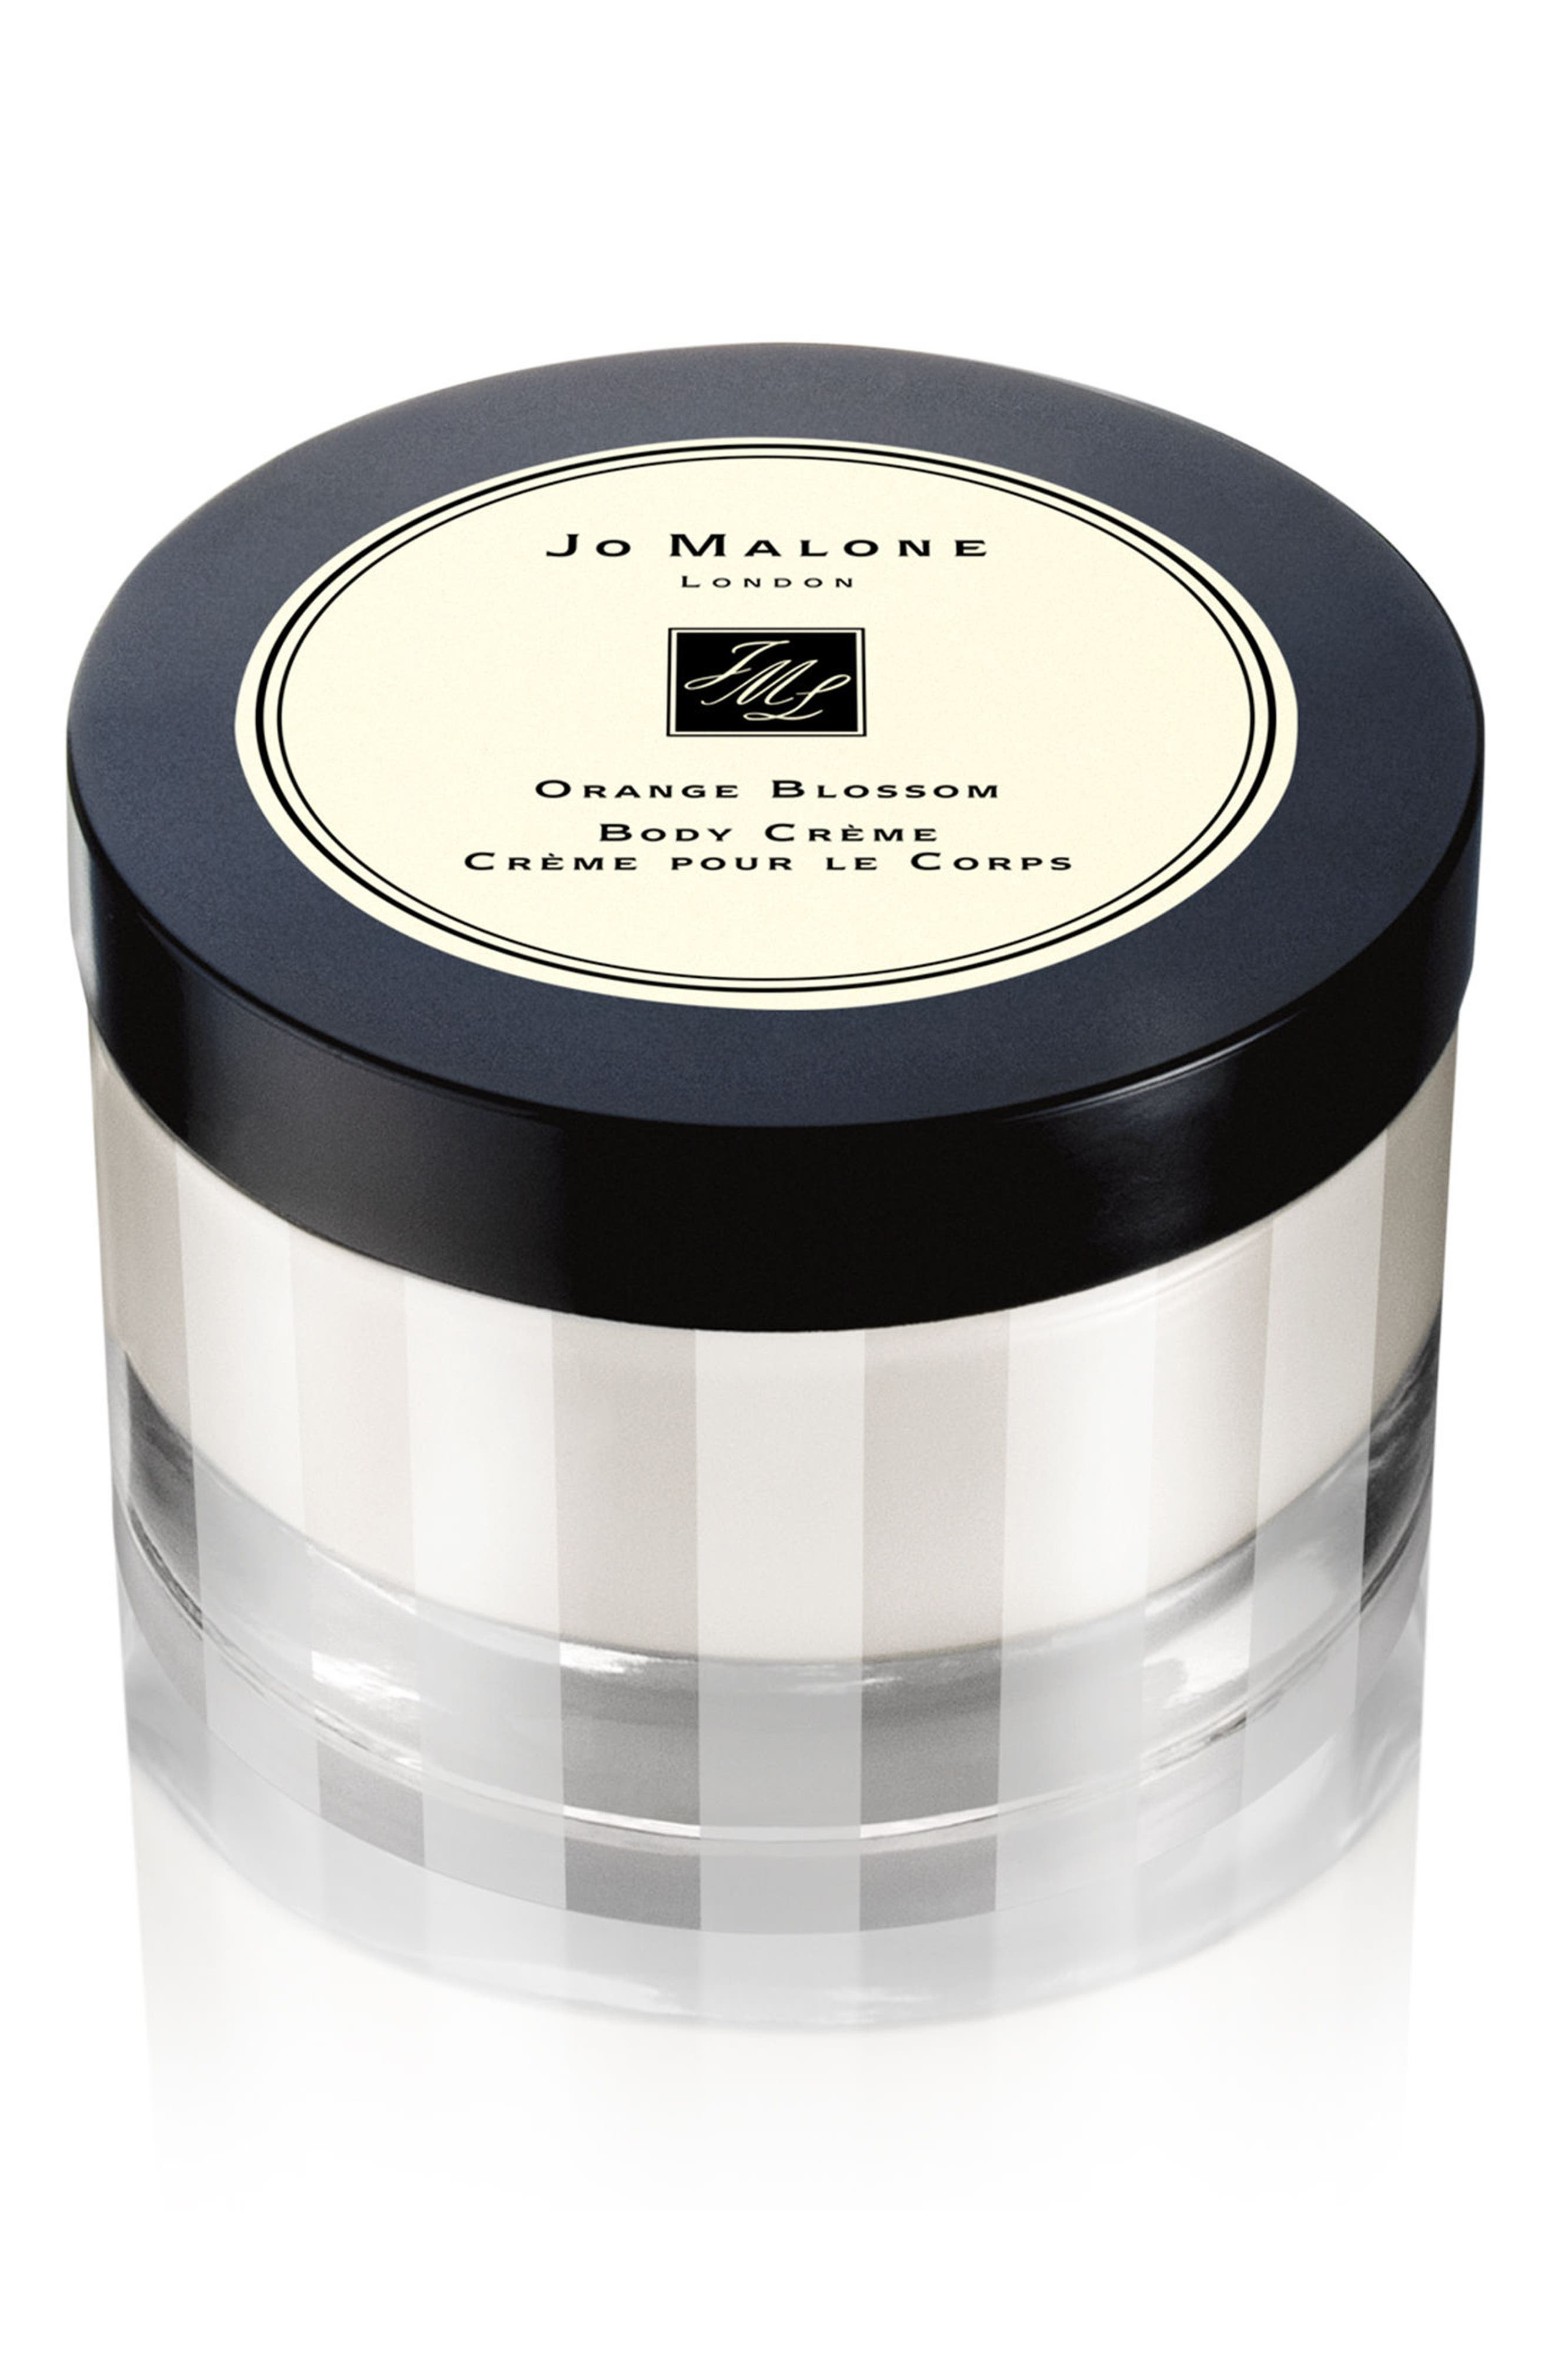 Alternate Image 1 Selected - Jo Malone London™ Orange Blossom Body Crème